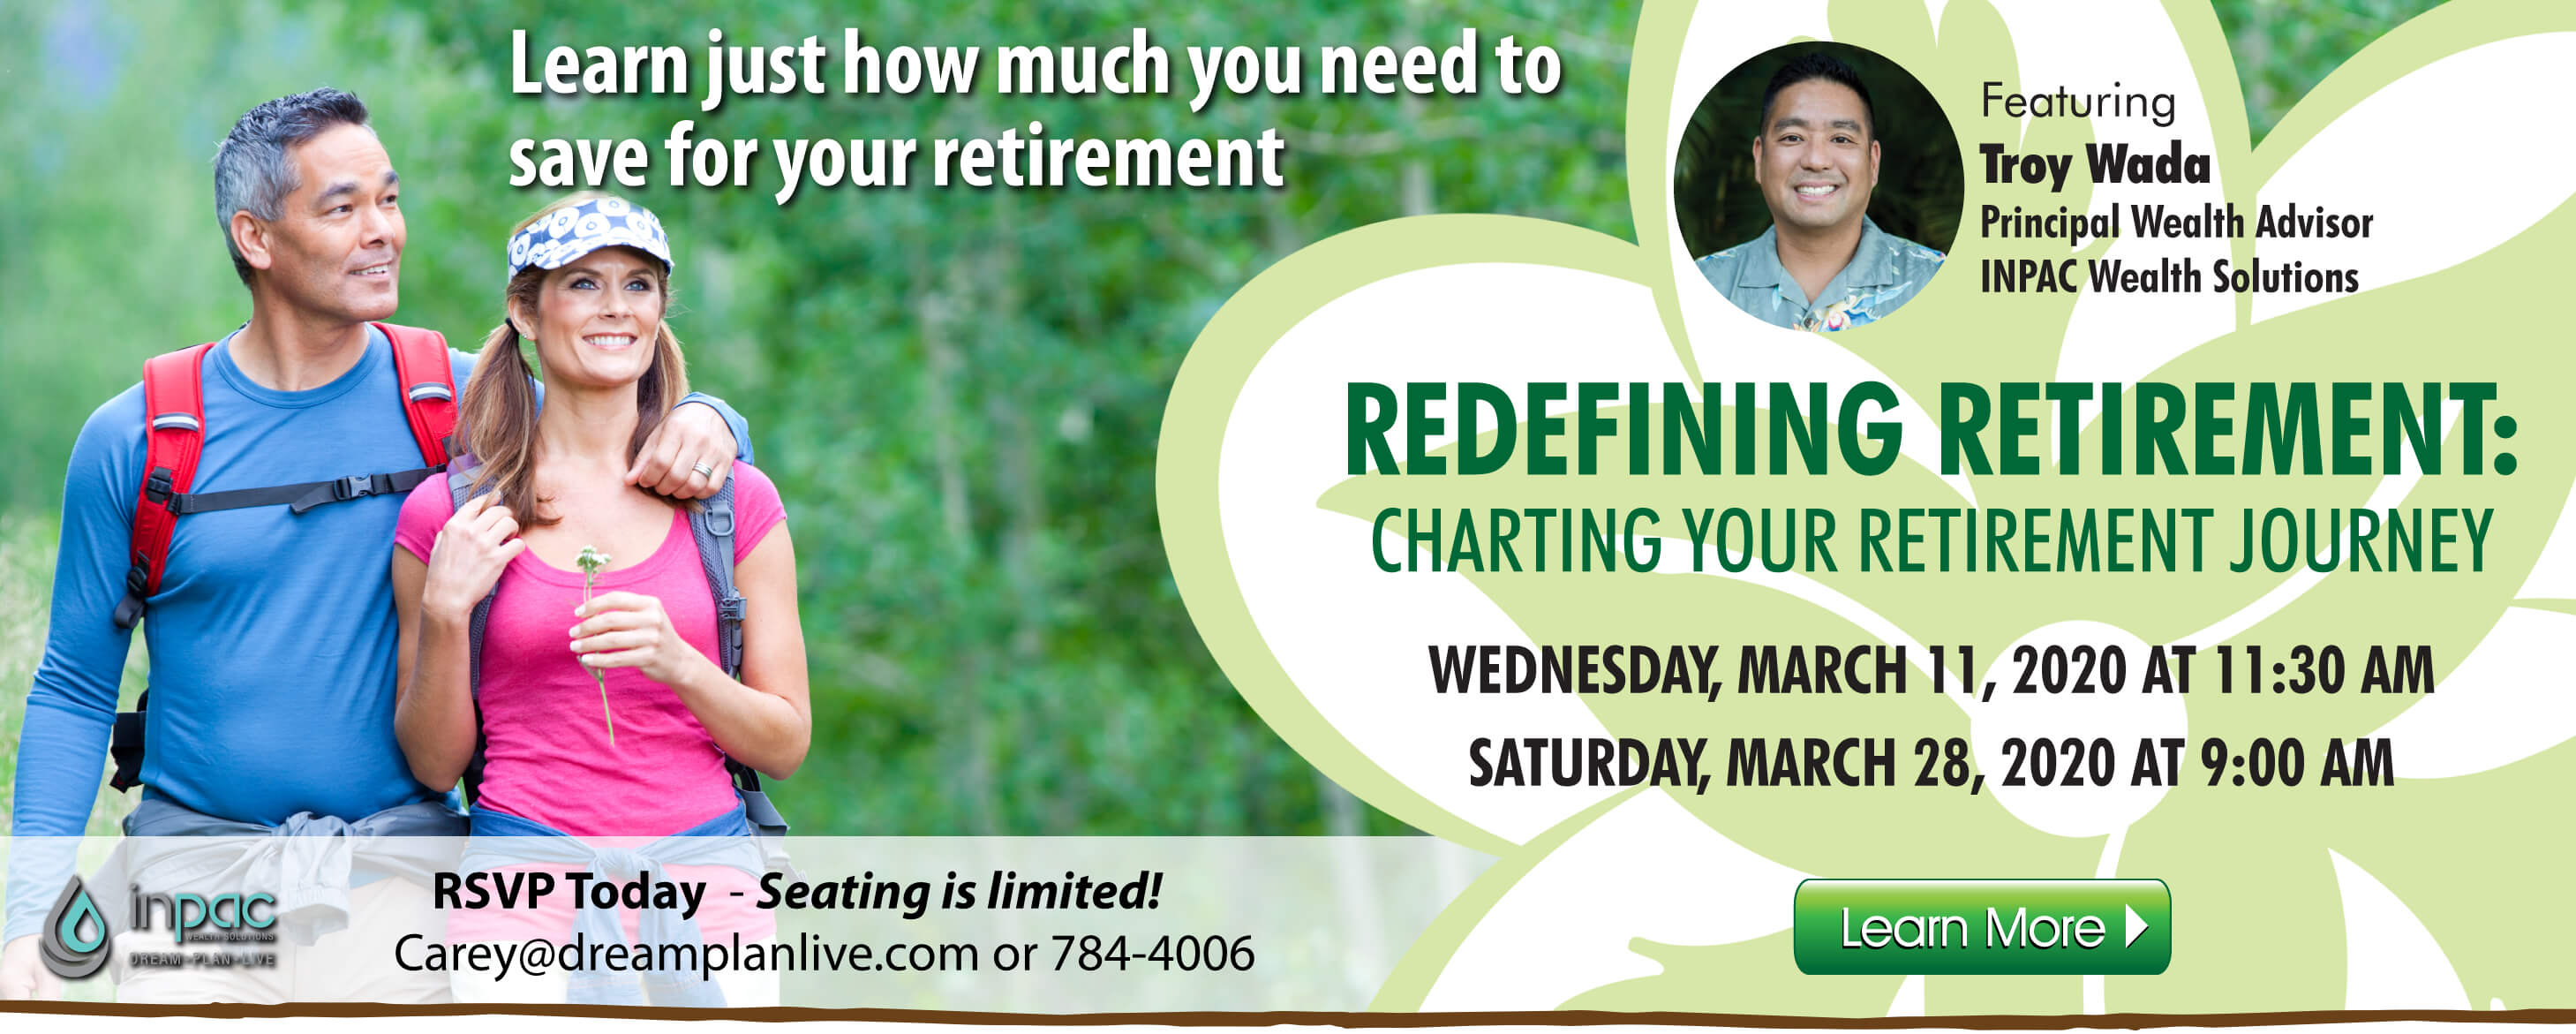 Redefining Retirement: Charting Your Retirement Journey.  RSVP Today!